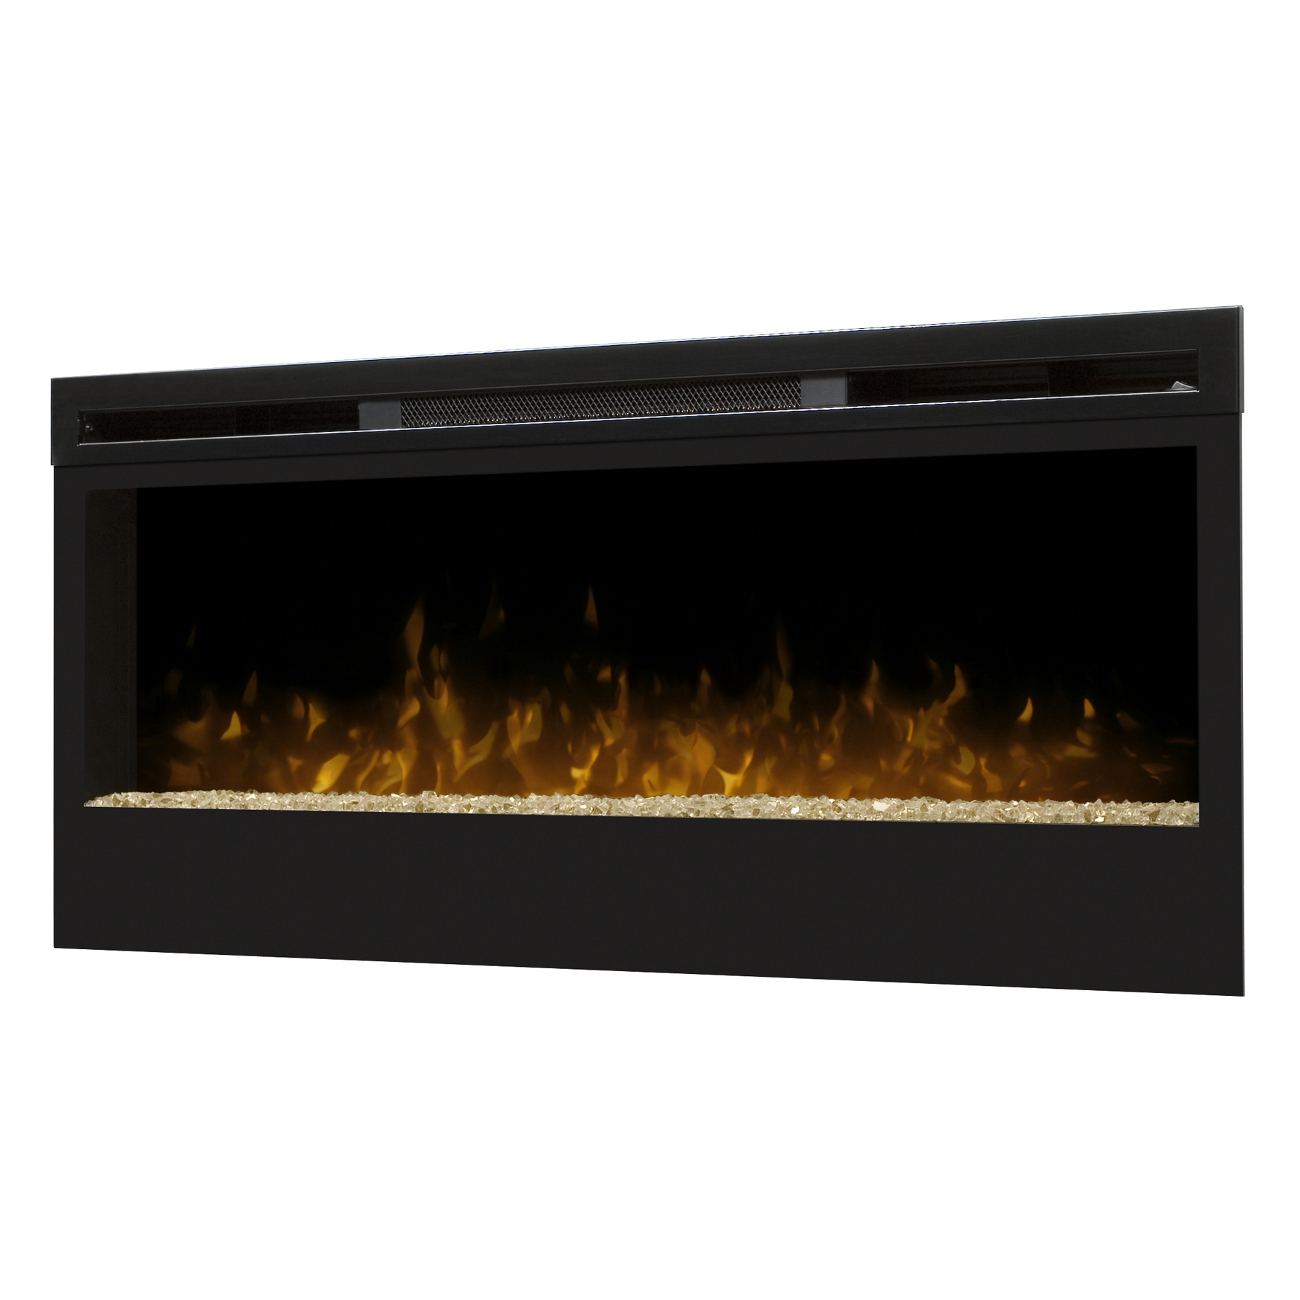 Dimplex 50 Synergy Electric Fireplace Insert Wall Mount